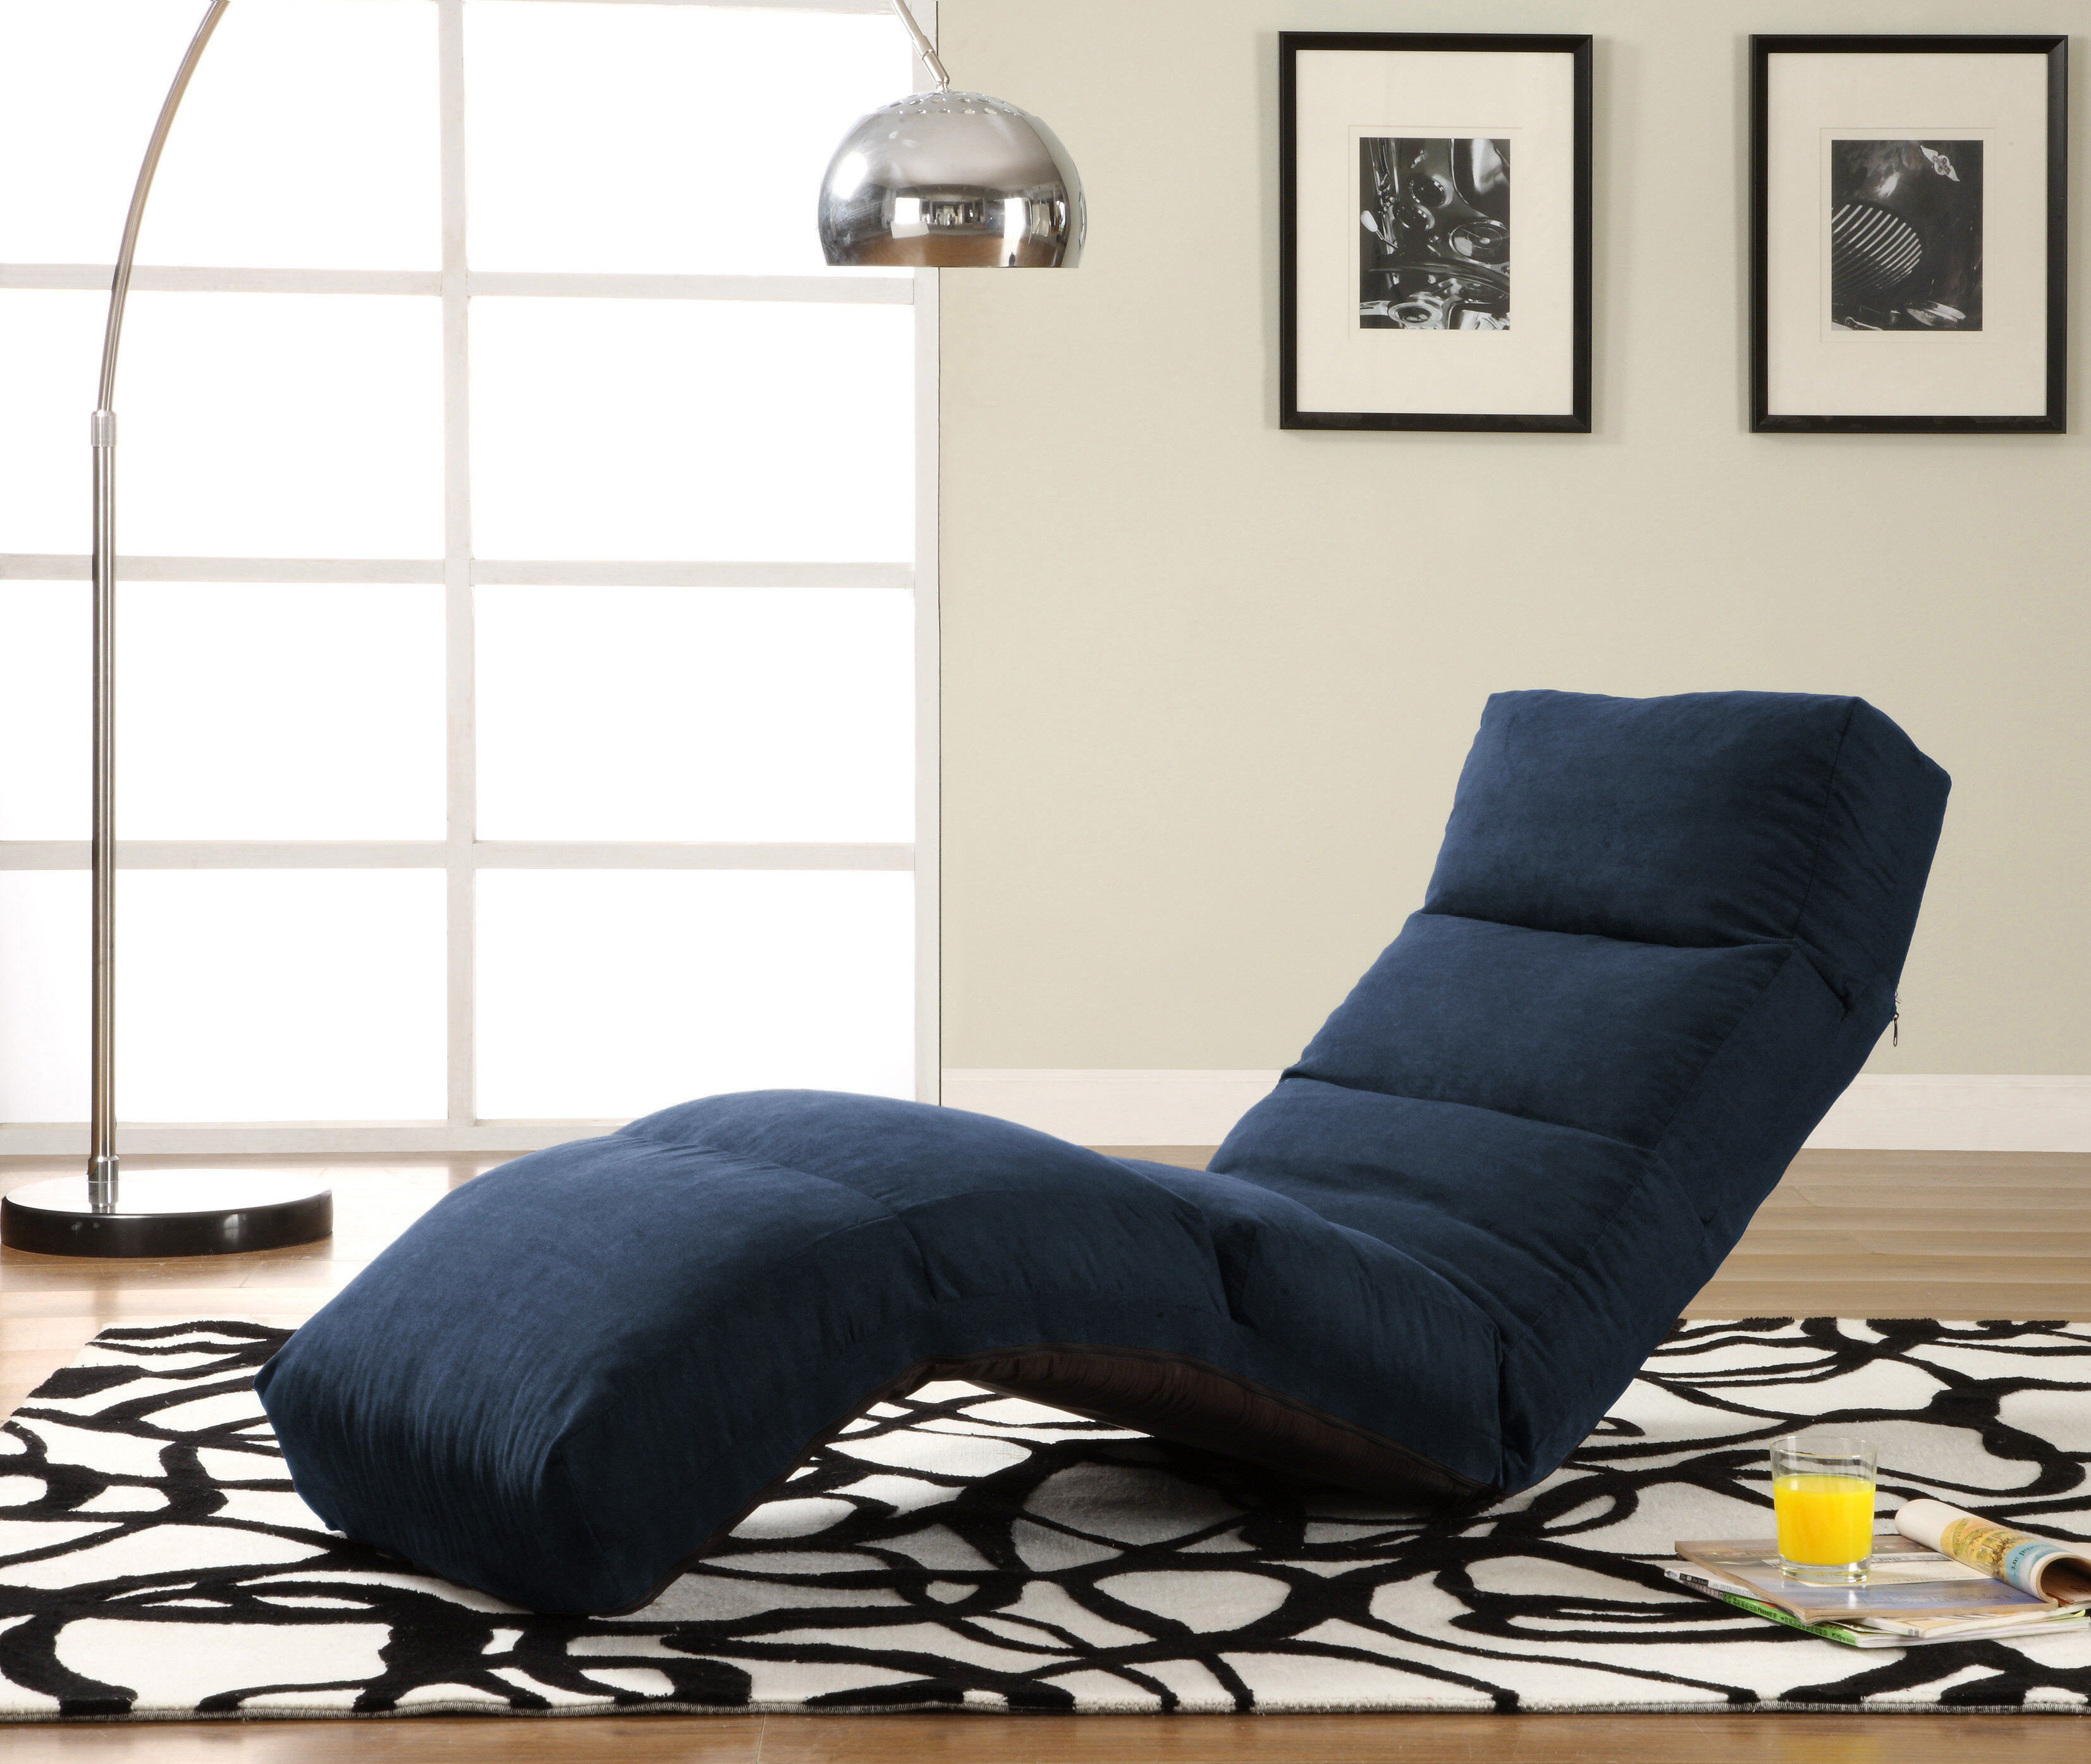 LifeStyle Solutions FREE Jet Curved Lounge Chair in Navy $200